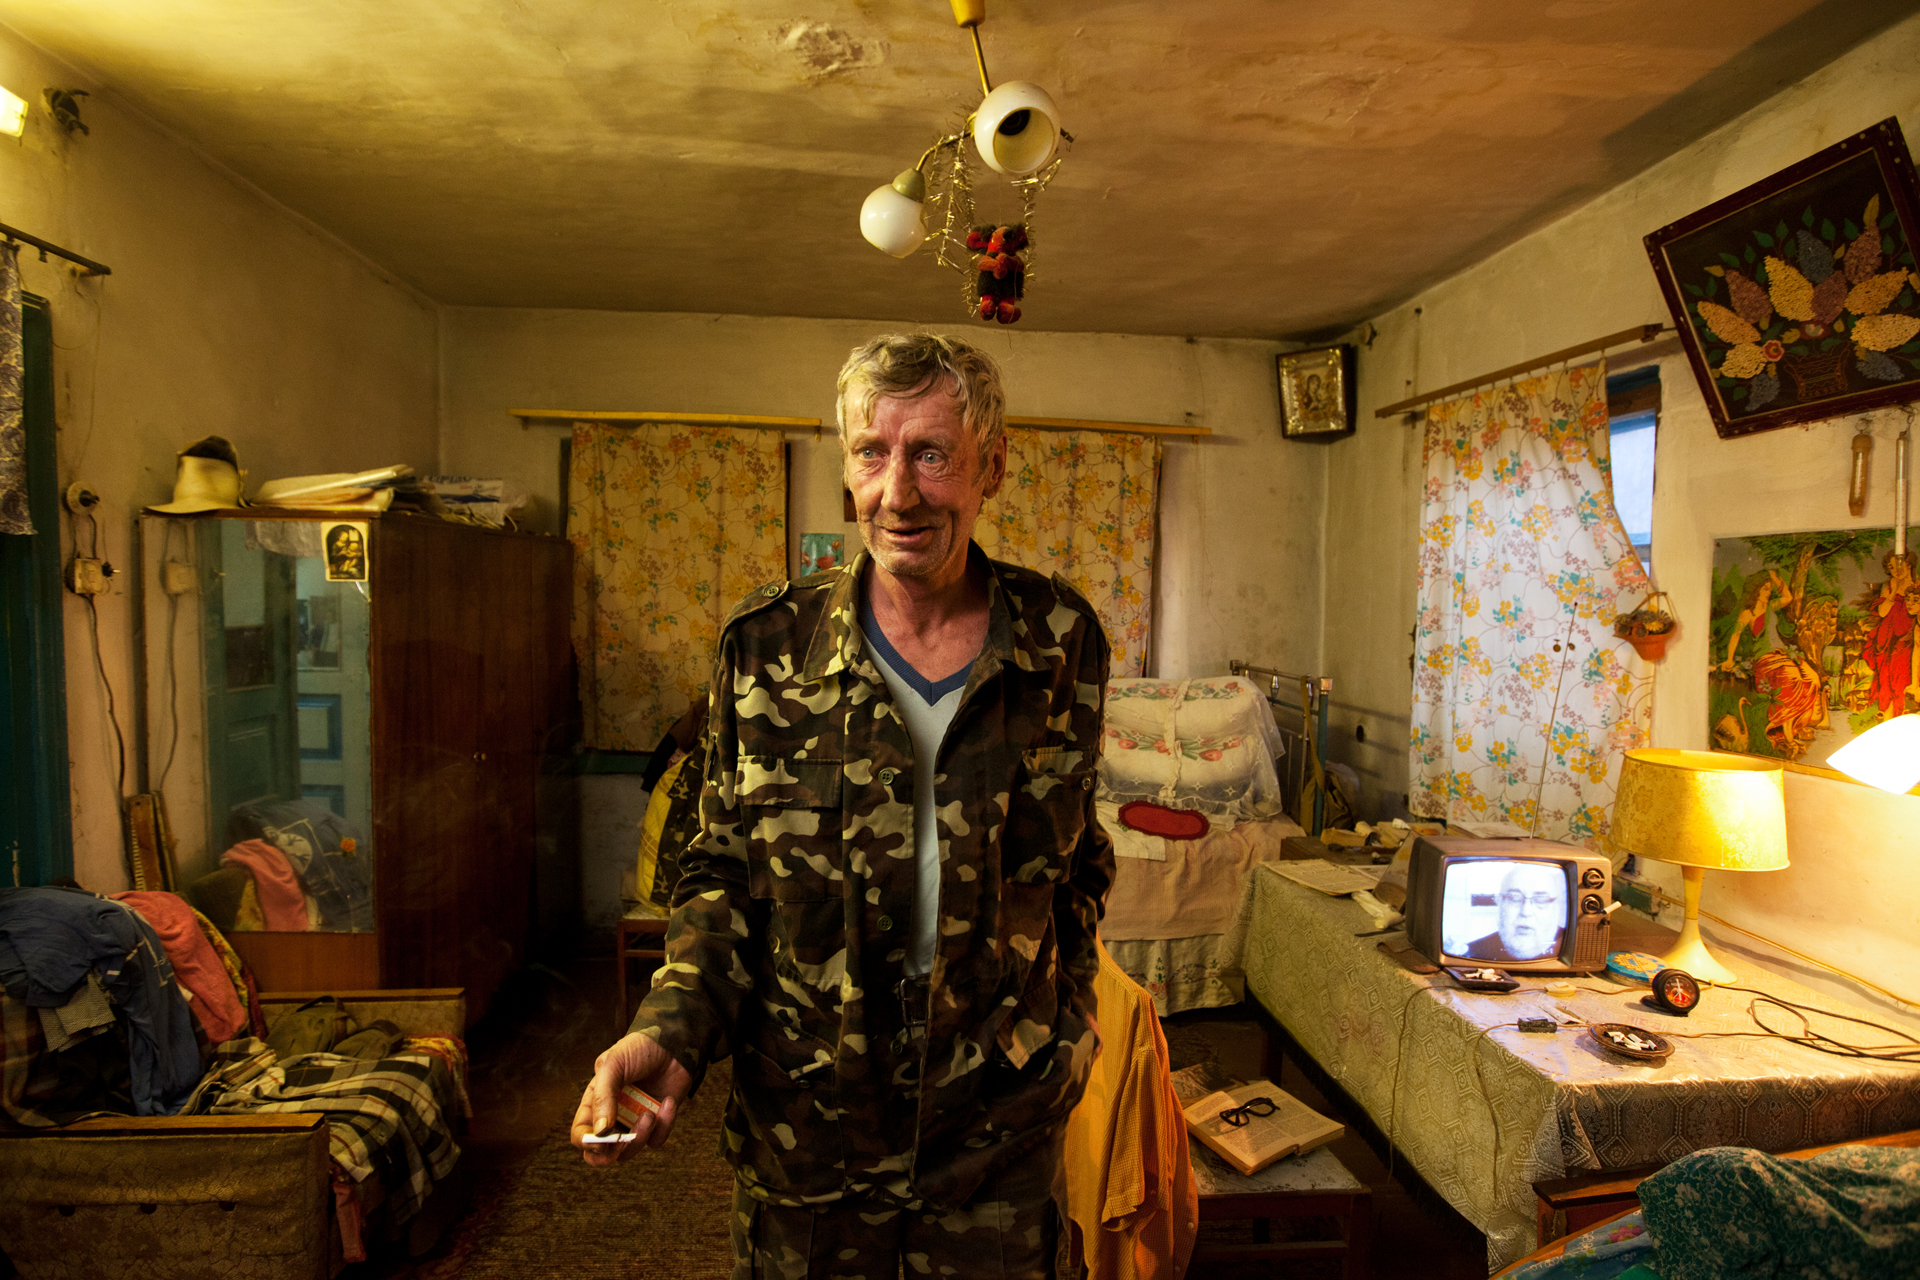 The skin of 54-year-old returnee Vladimir shows signs of aging beyond his years, which doctors contribute to radiation.  Lubyanka, Ukraine